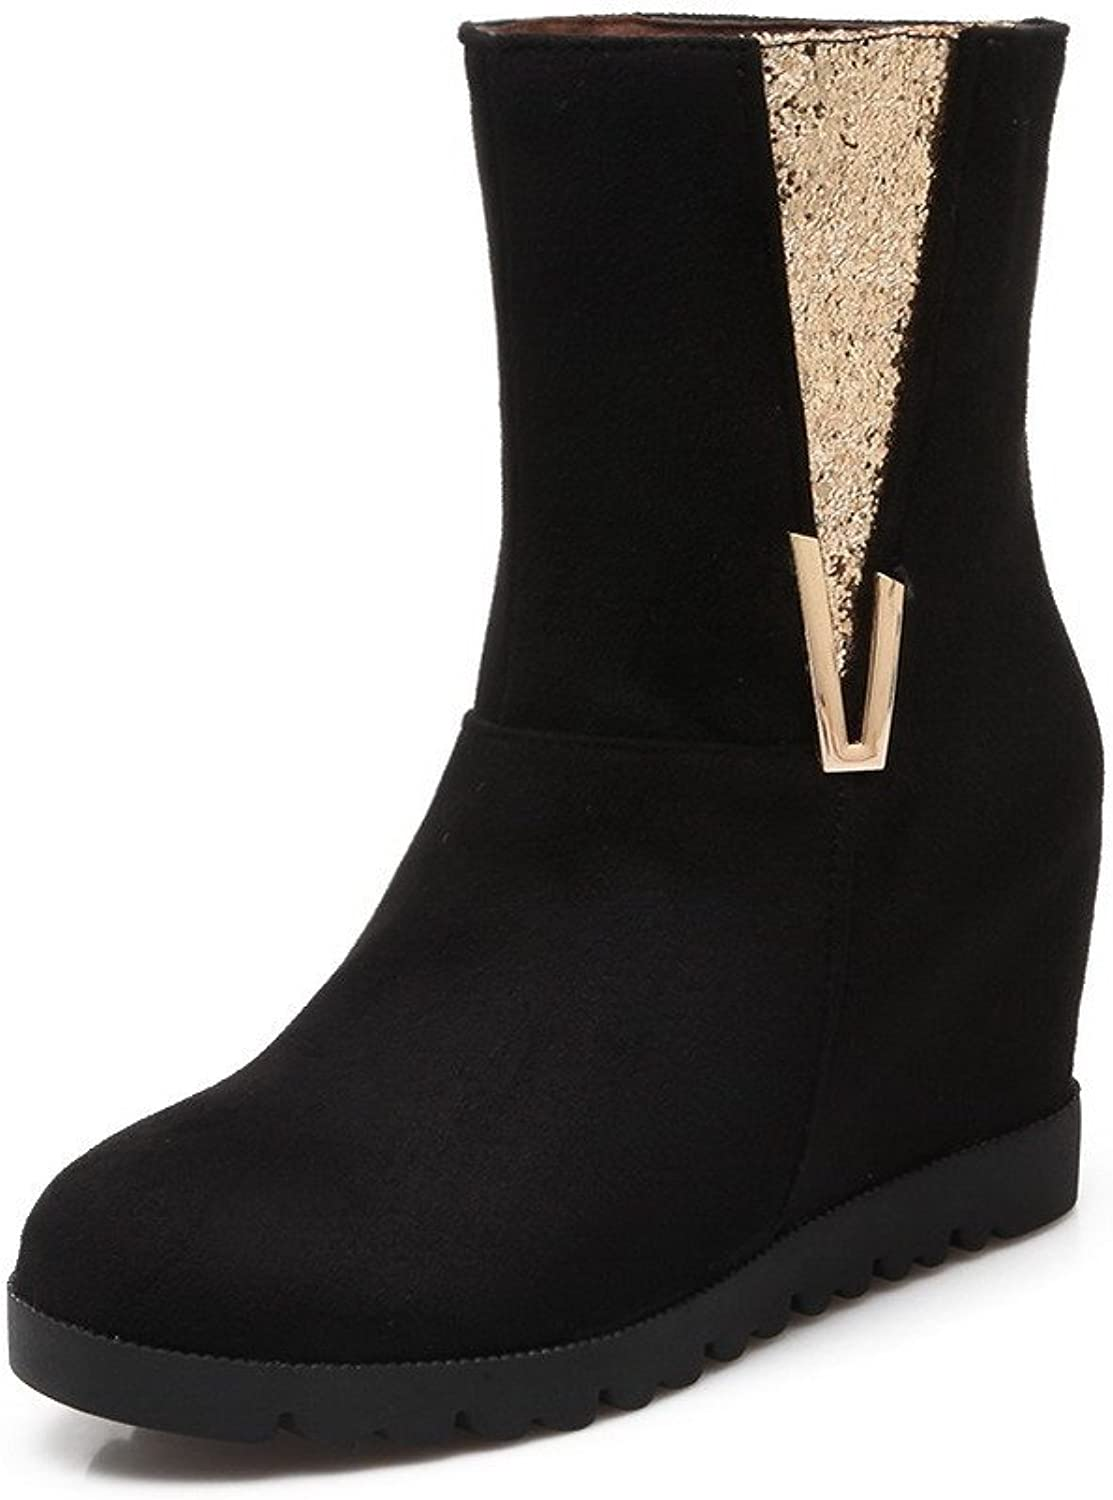 AllhqFashion Women's Frosted Round Closed Toe Kitten Heels Pull-On Solid Boots